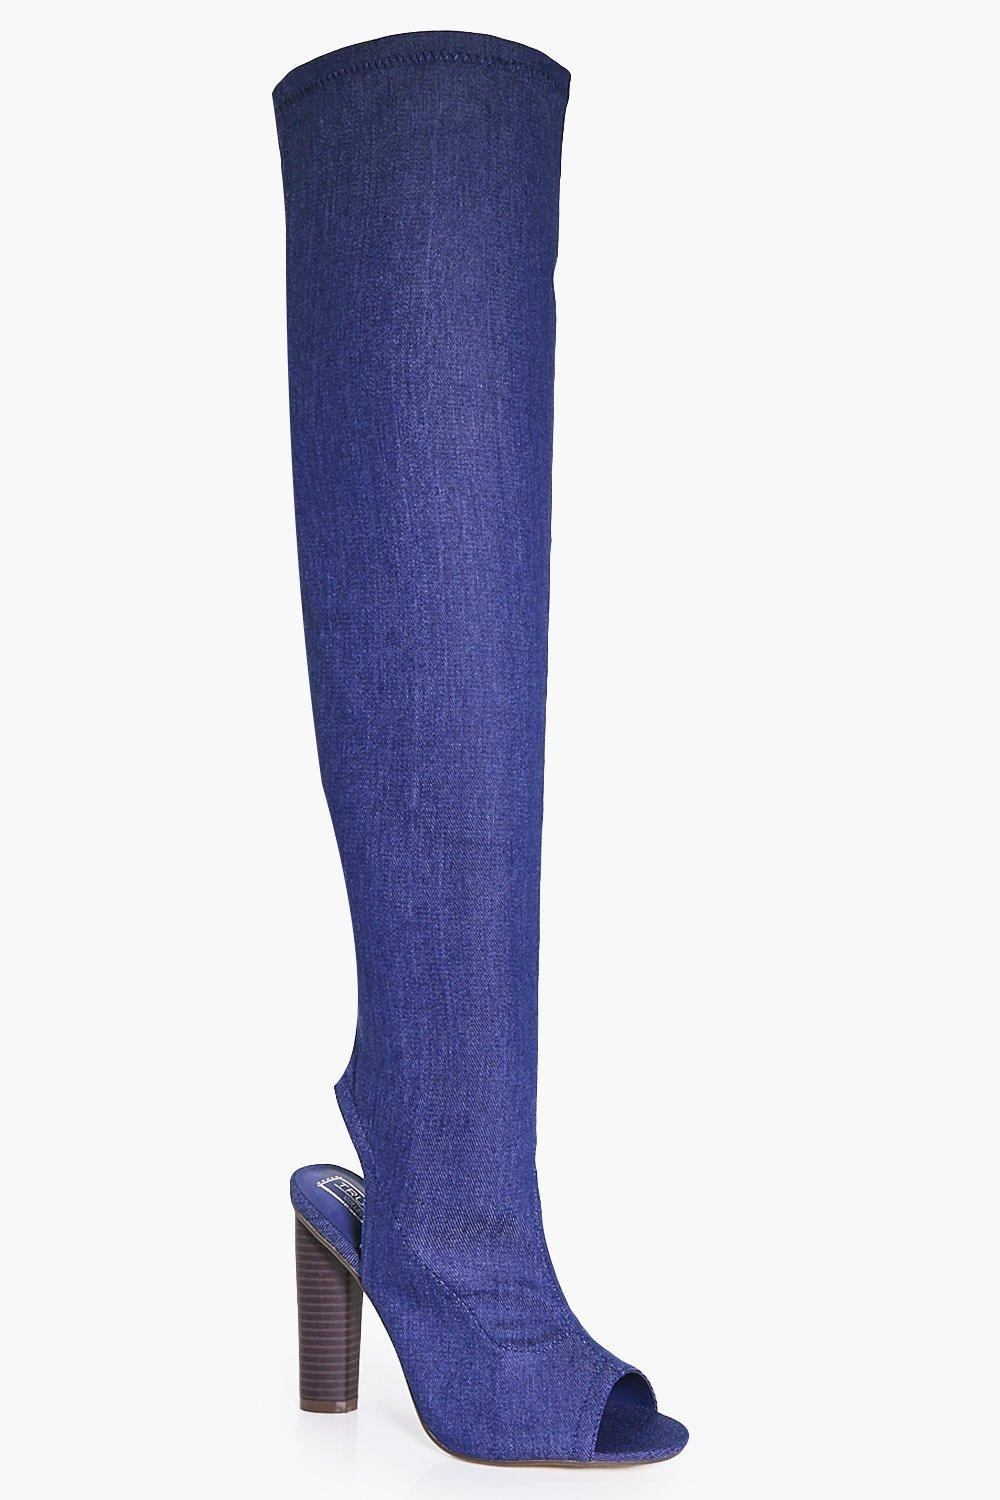 Betsy Peeptoe Over The Knee Boot